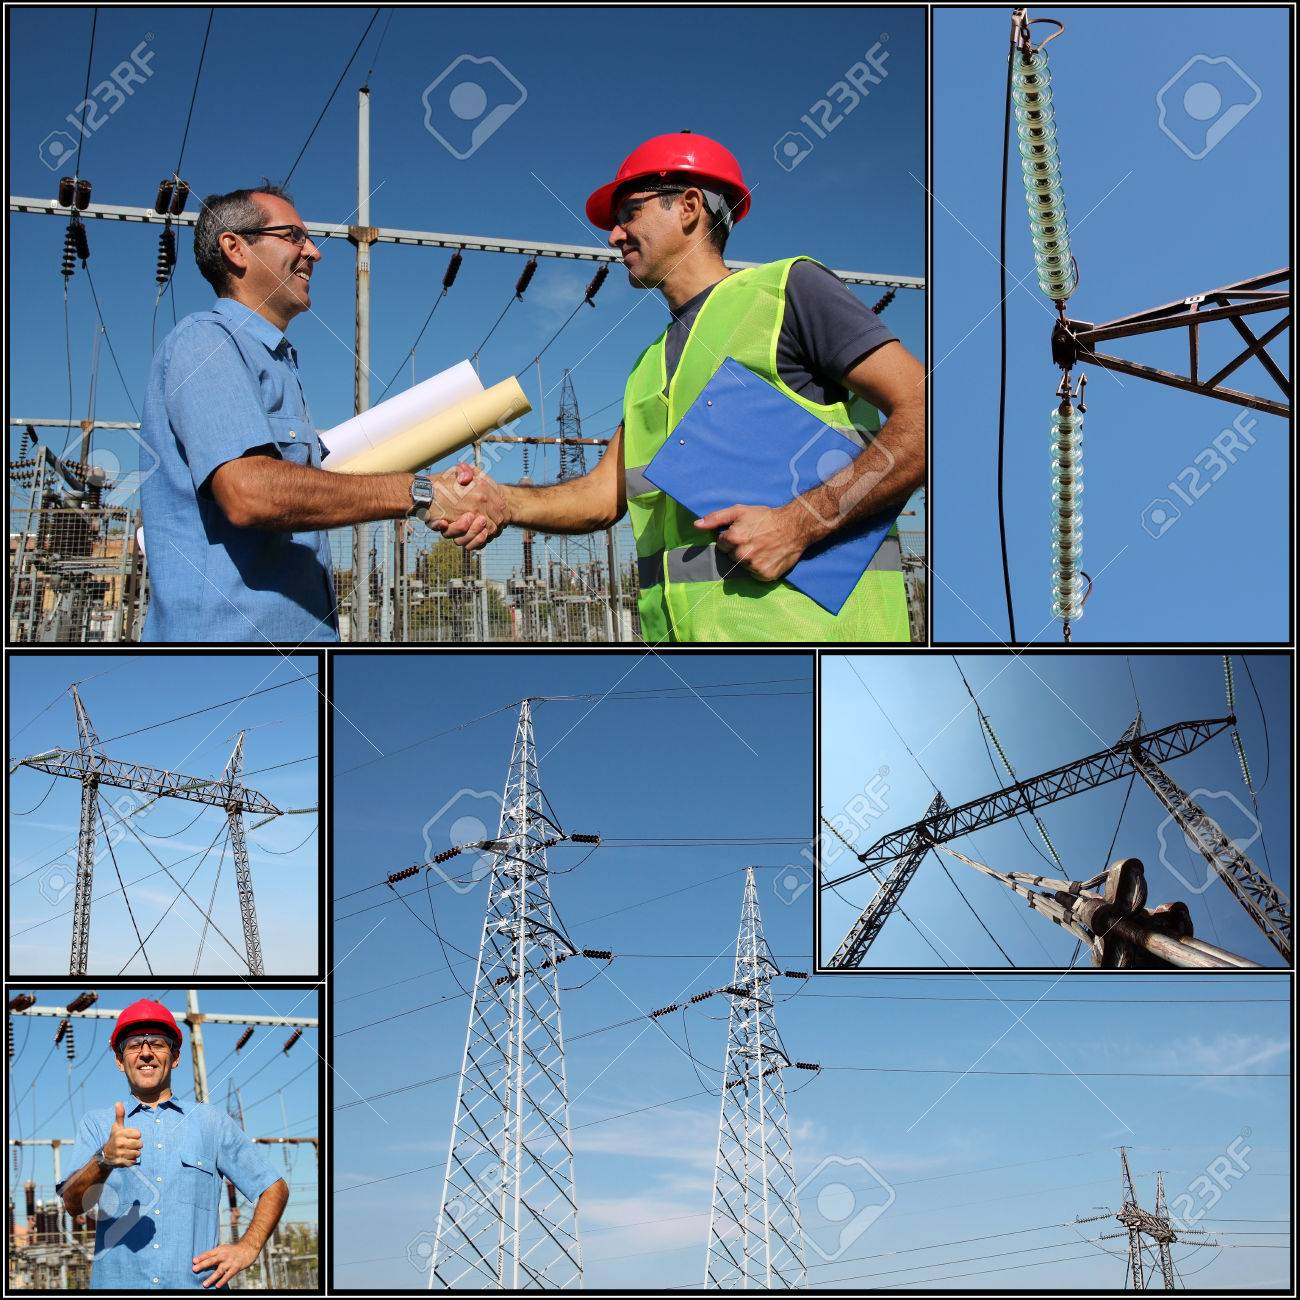 Electricity Distribution Collage of photographs showing electric company workers at the power substation with power distribution equipment - 22403837